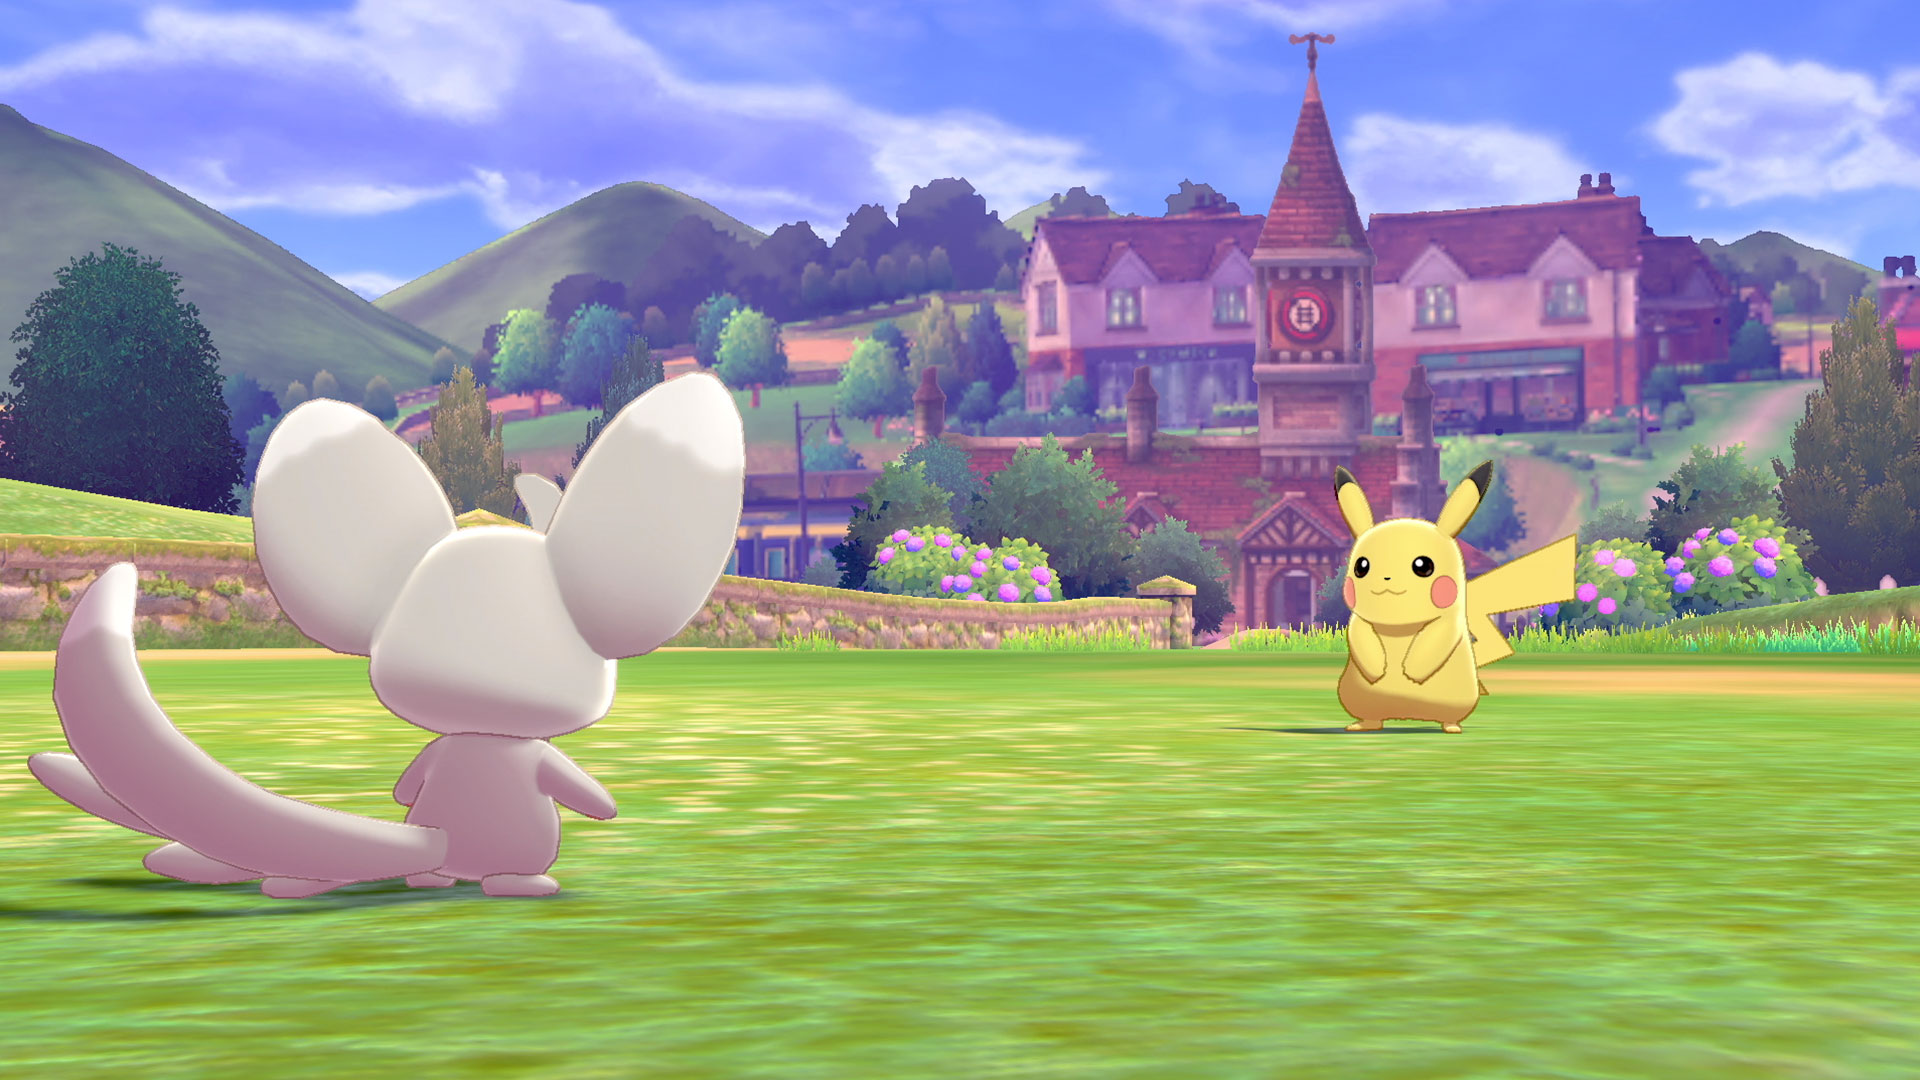 Pokemon Sword and Shield Pokedex All Pokemon in the new Pokemon 1920x1080